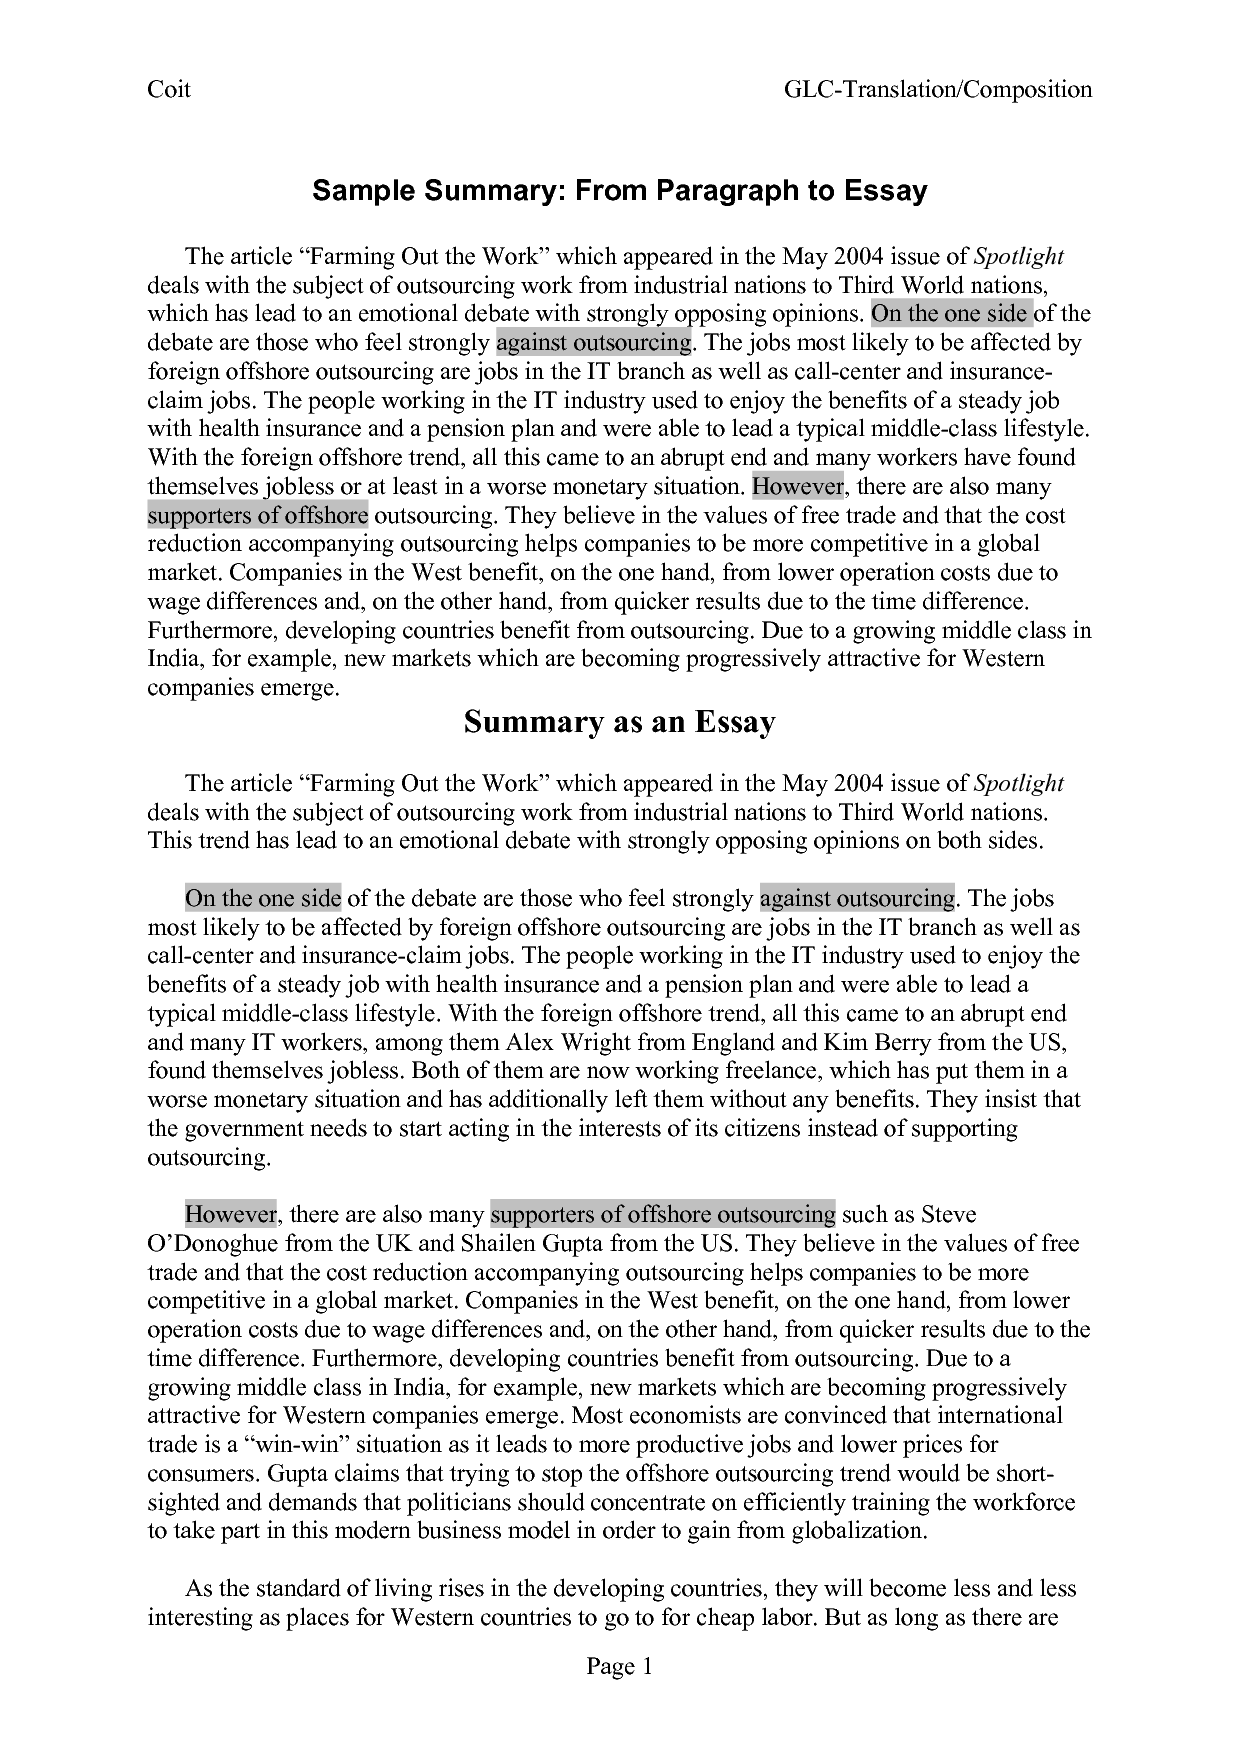 001 Sample Essay Summary Papers 248300 Astounding Executive Definition Paper Topics Response Format Full